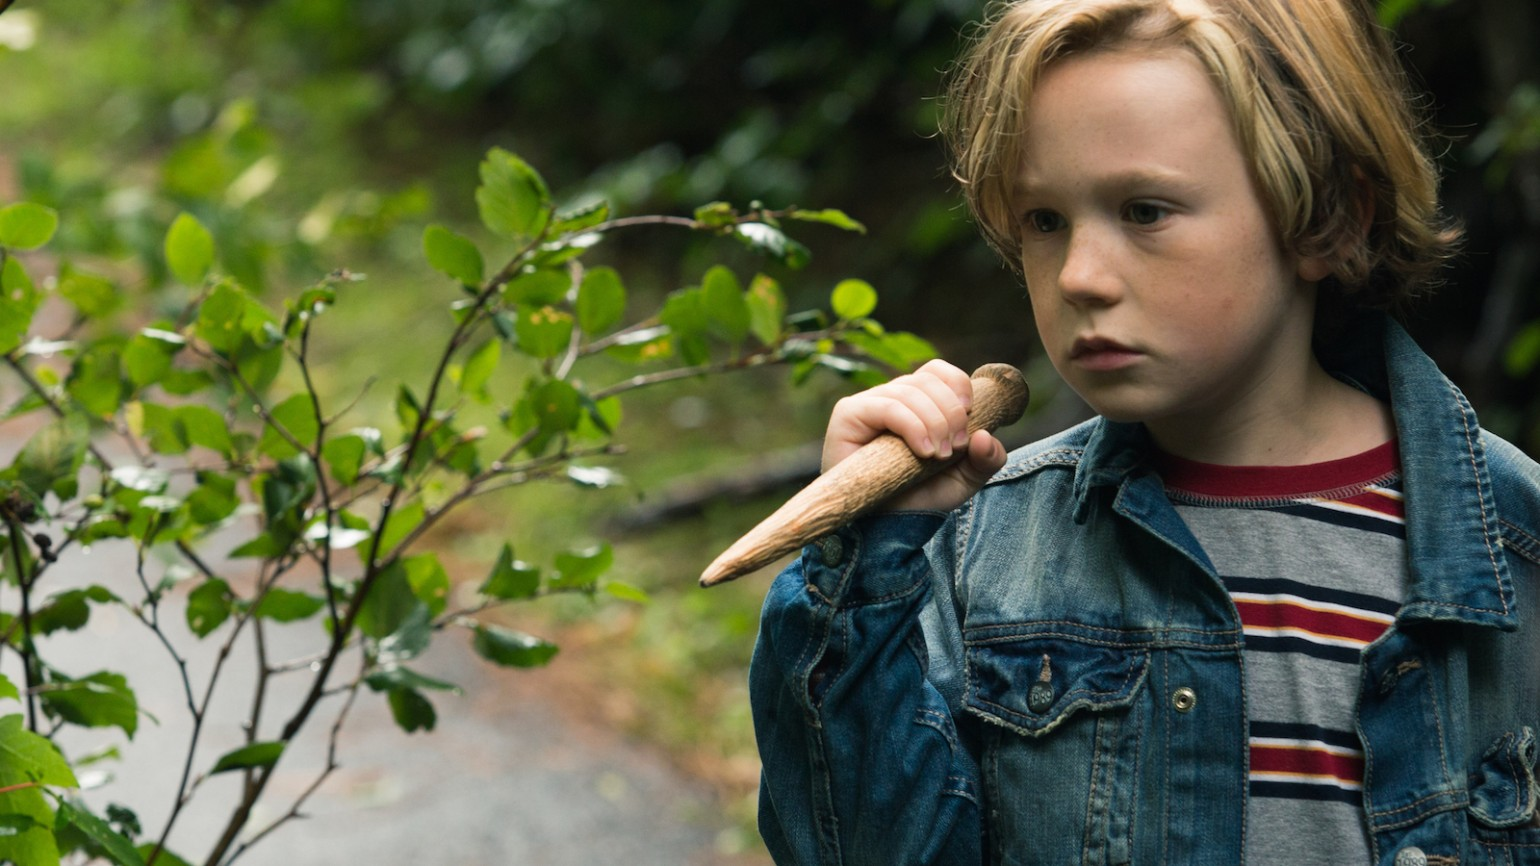 A hesitant Oscar (Jack Fulton), with stake in hand, follows a group of bullies into a graveyard.